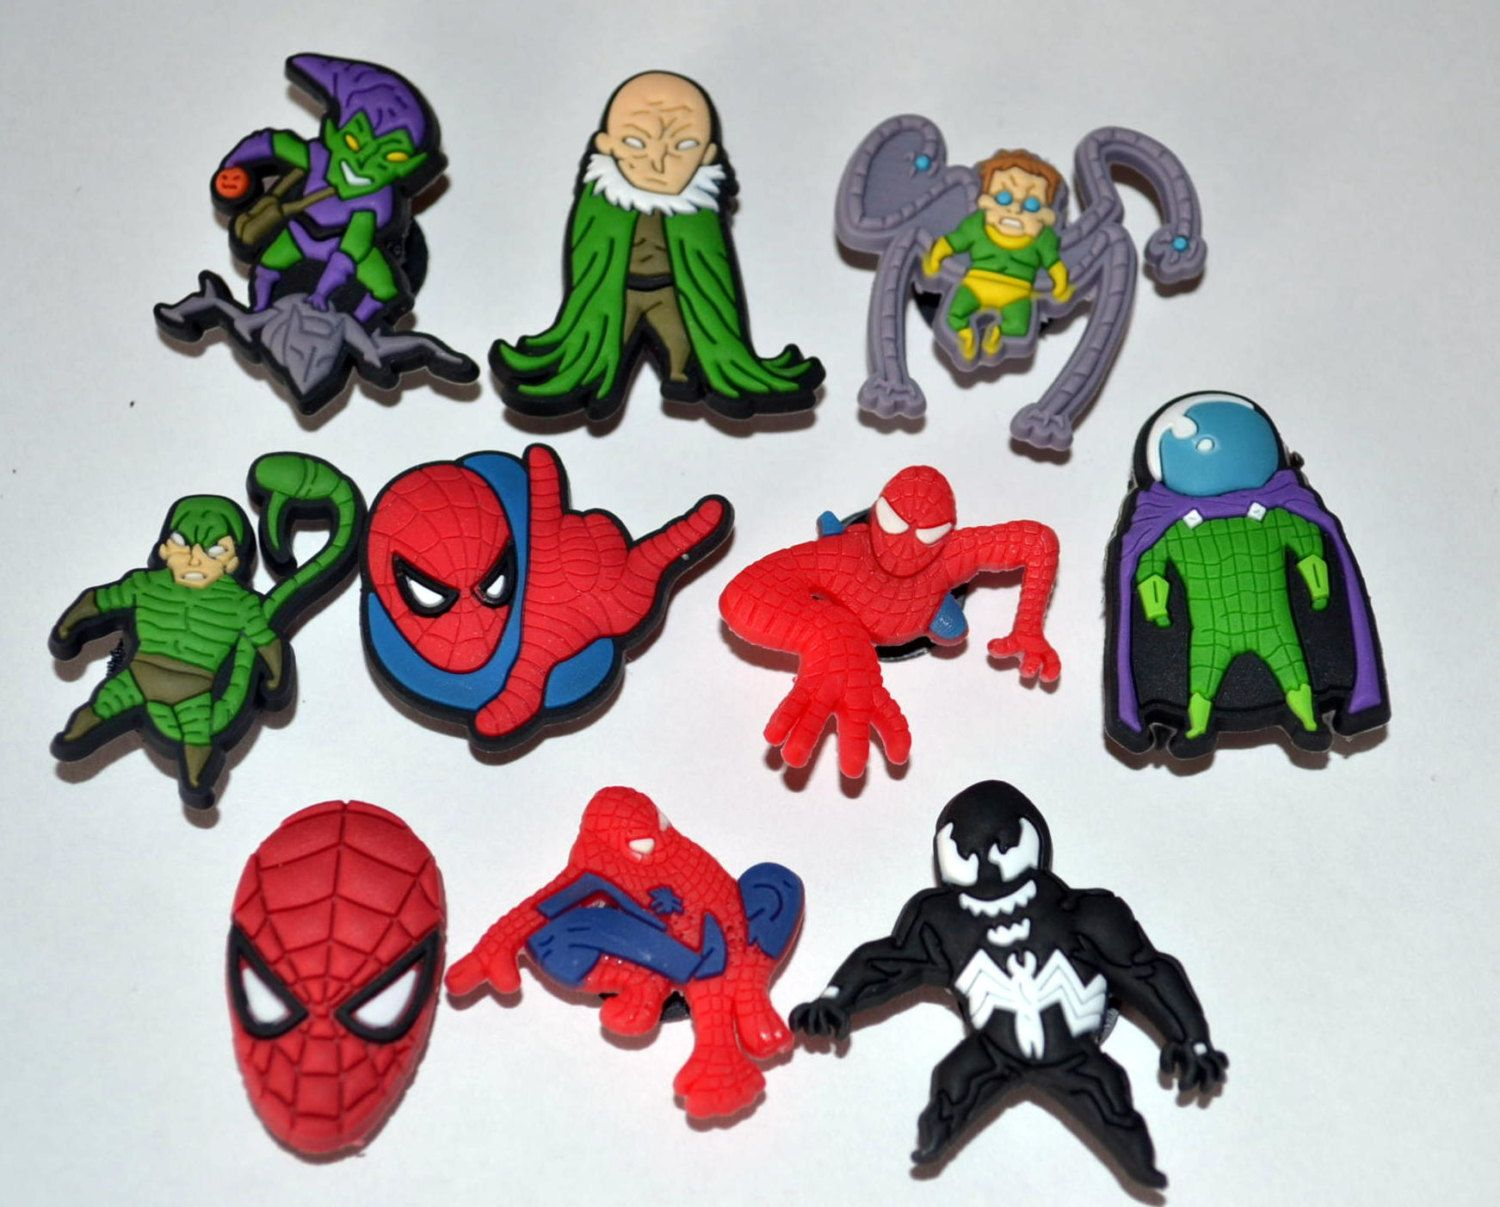 Spiderman Comic Book Villains 10pc Shoe Charms Cake Toppers Birthday Party Pack Locker Magnets Back Birthday Party Packs Spiderman Comic Comic Book Villains